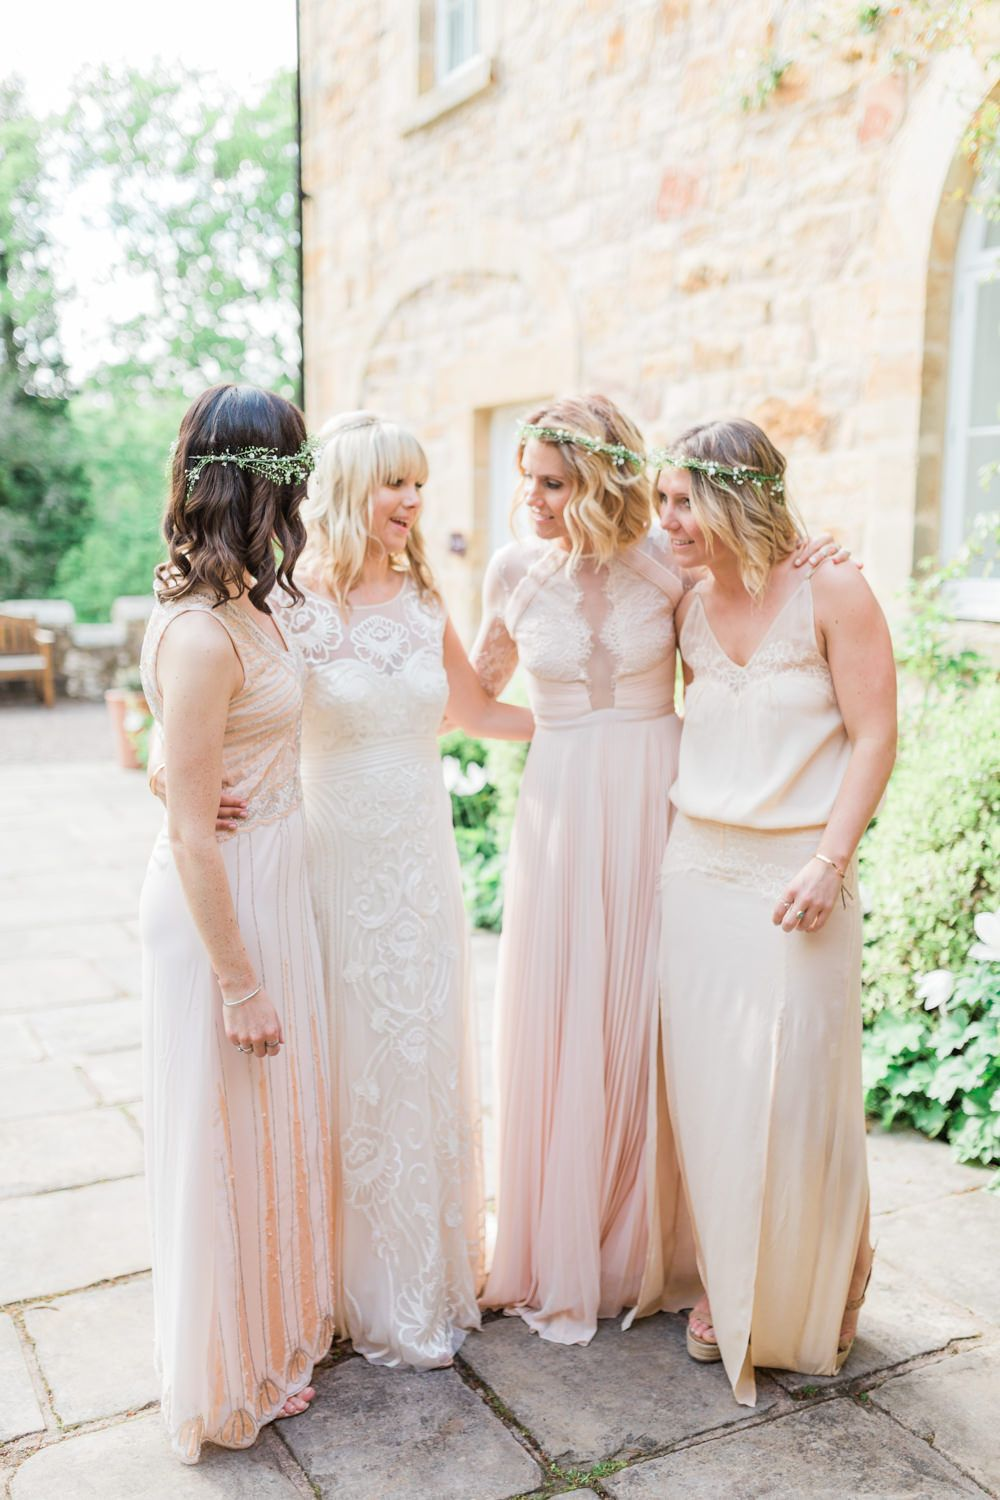 Temperley London Wedding Dress For A Peachy At Brinkburn Northumberland